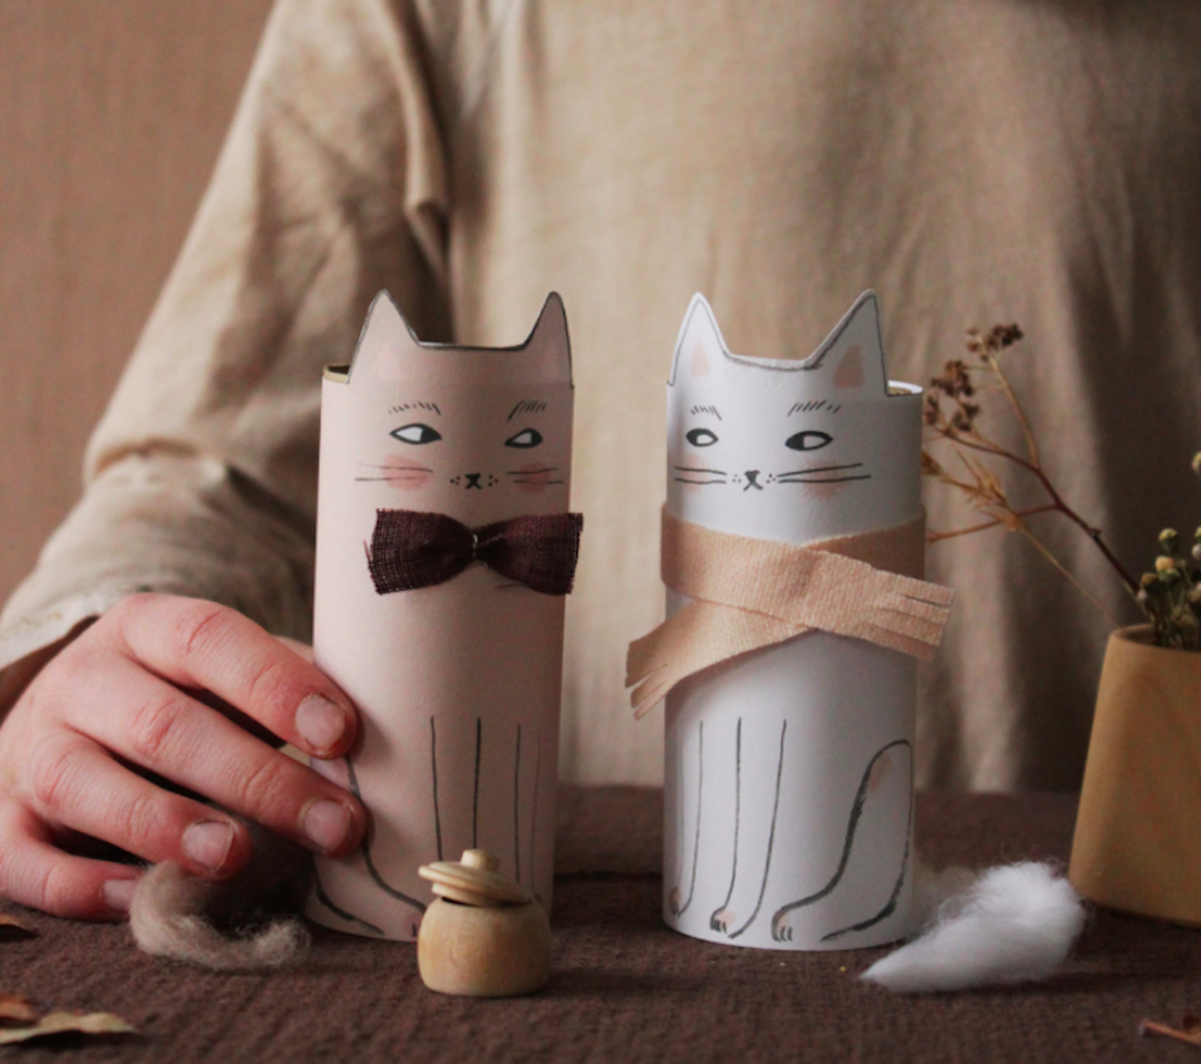 13 Simple Crafts For Kids To Make With 3 Supplies Or Less - Care.com